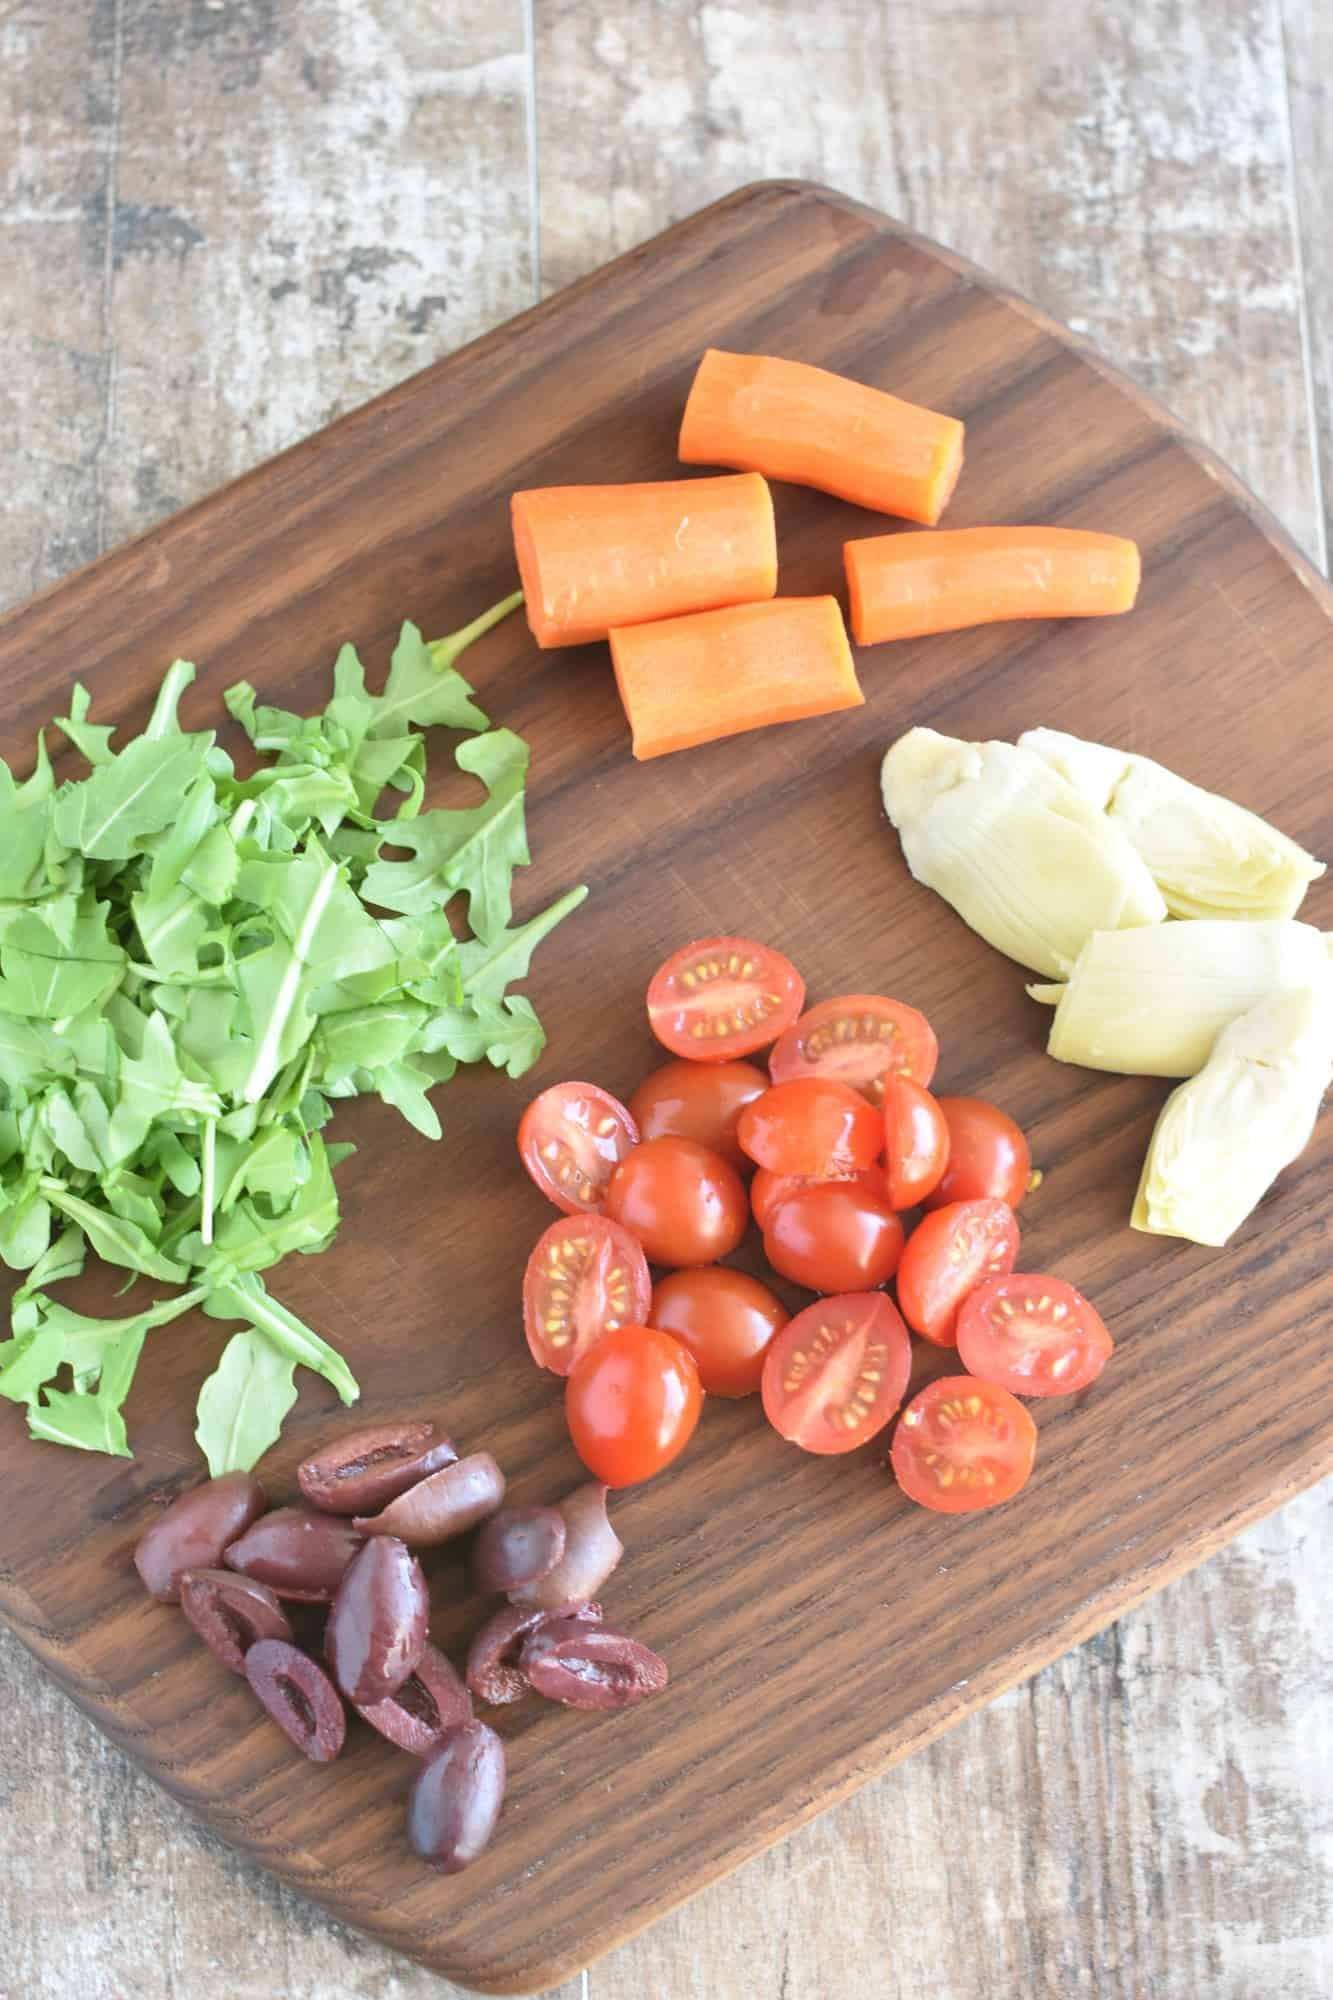 some of the ingredients on a wooden cutting board